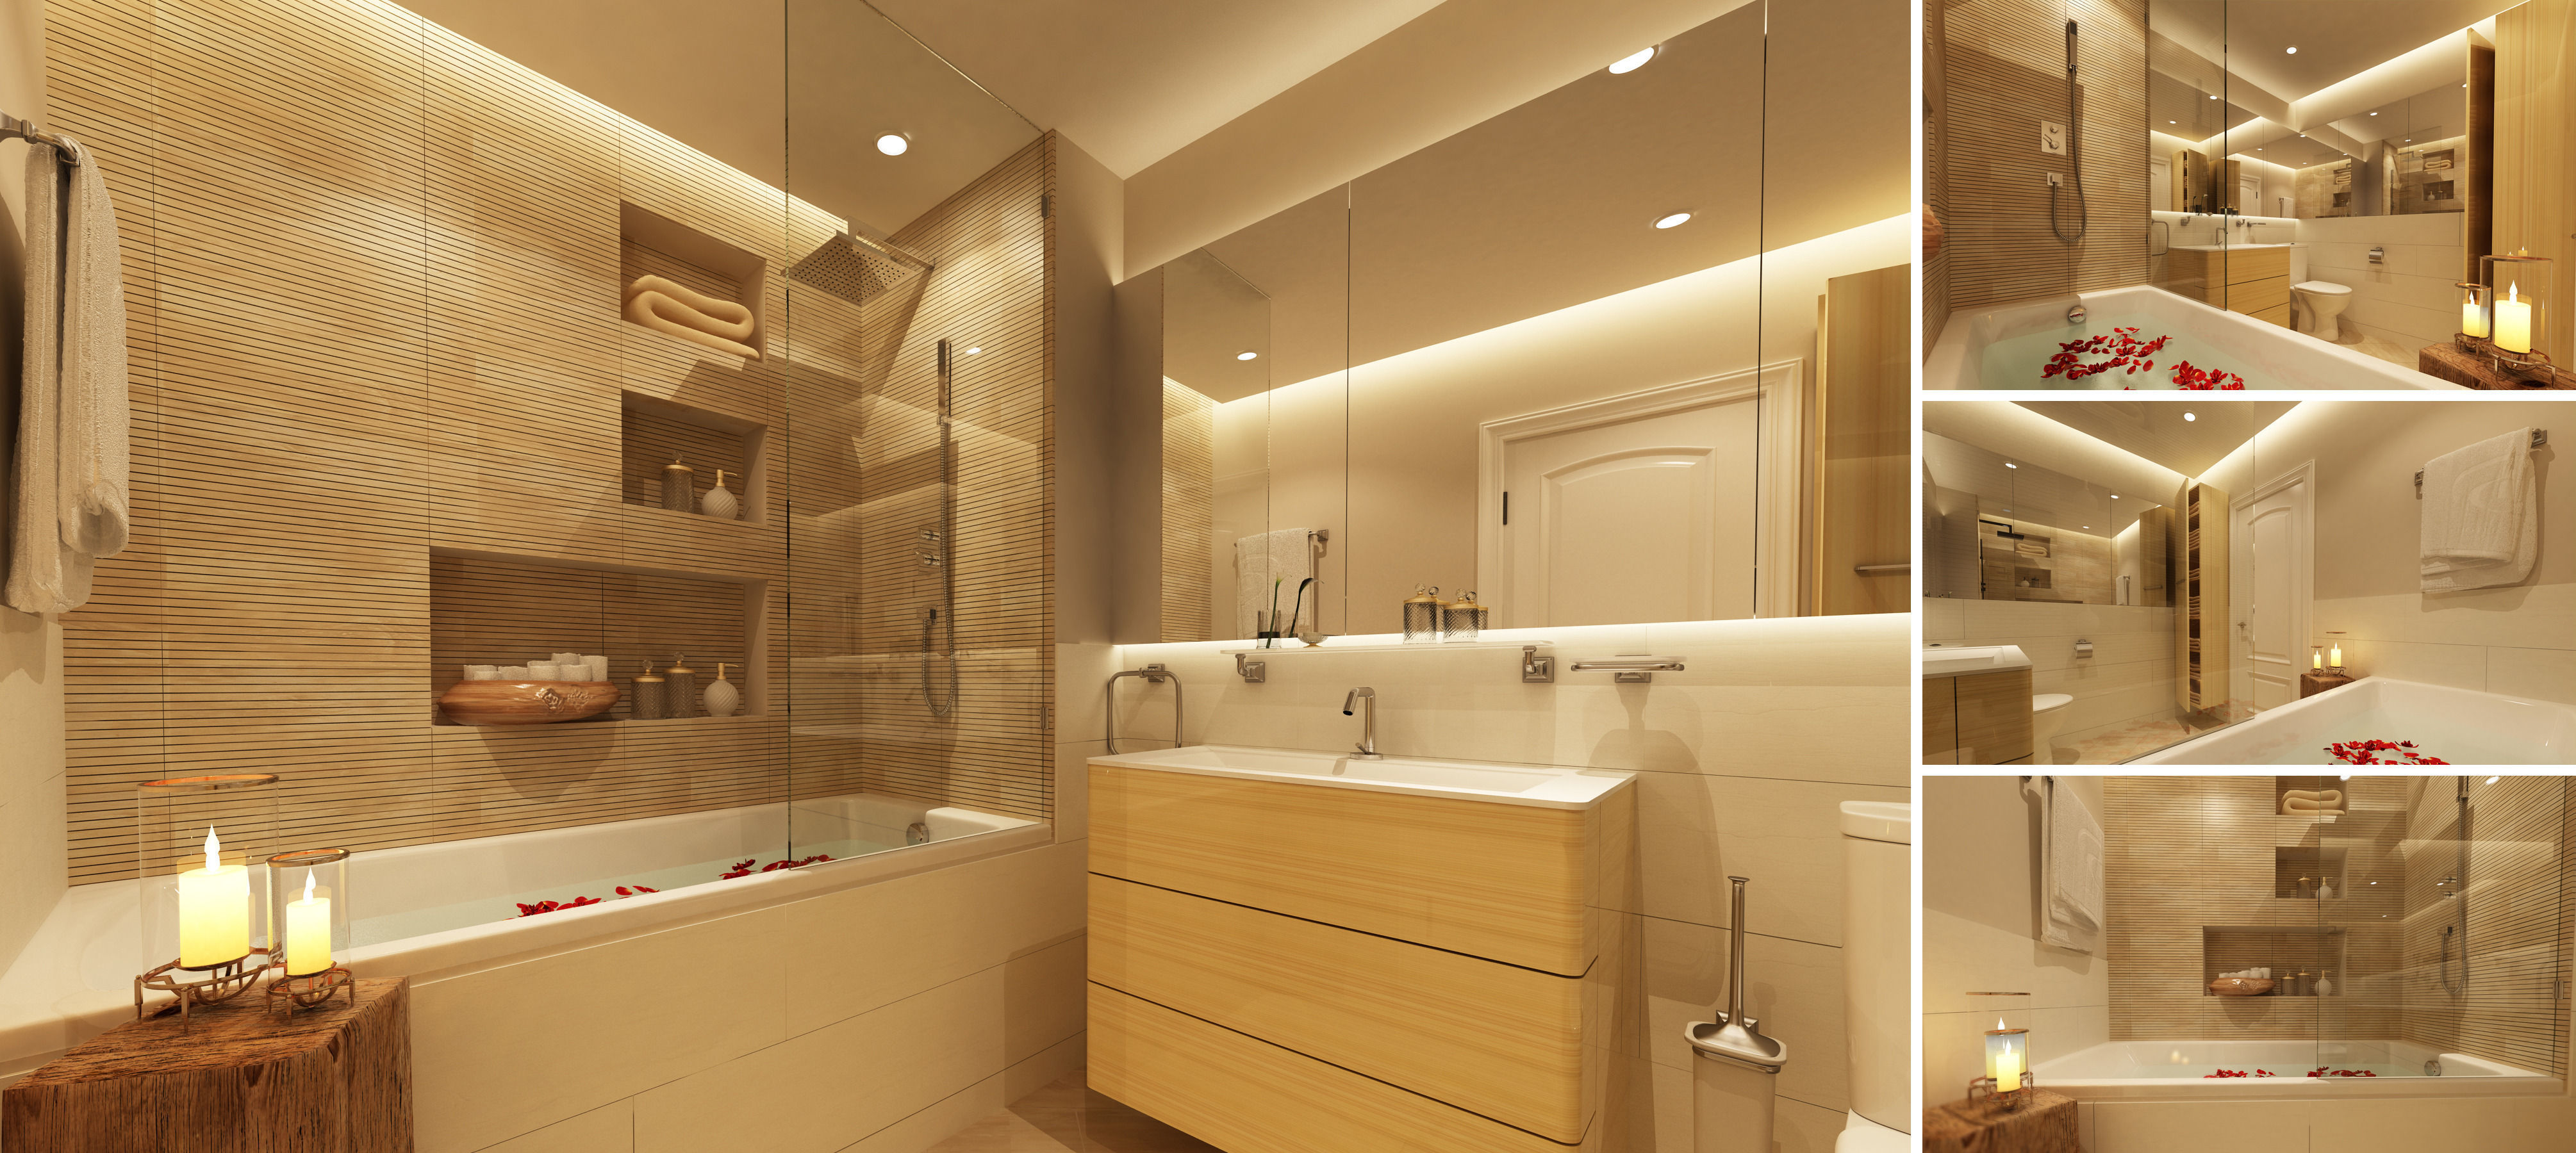 Master bathroom 3d model max for Model bathrooms pictures